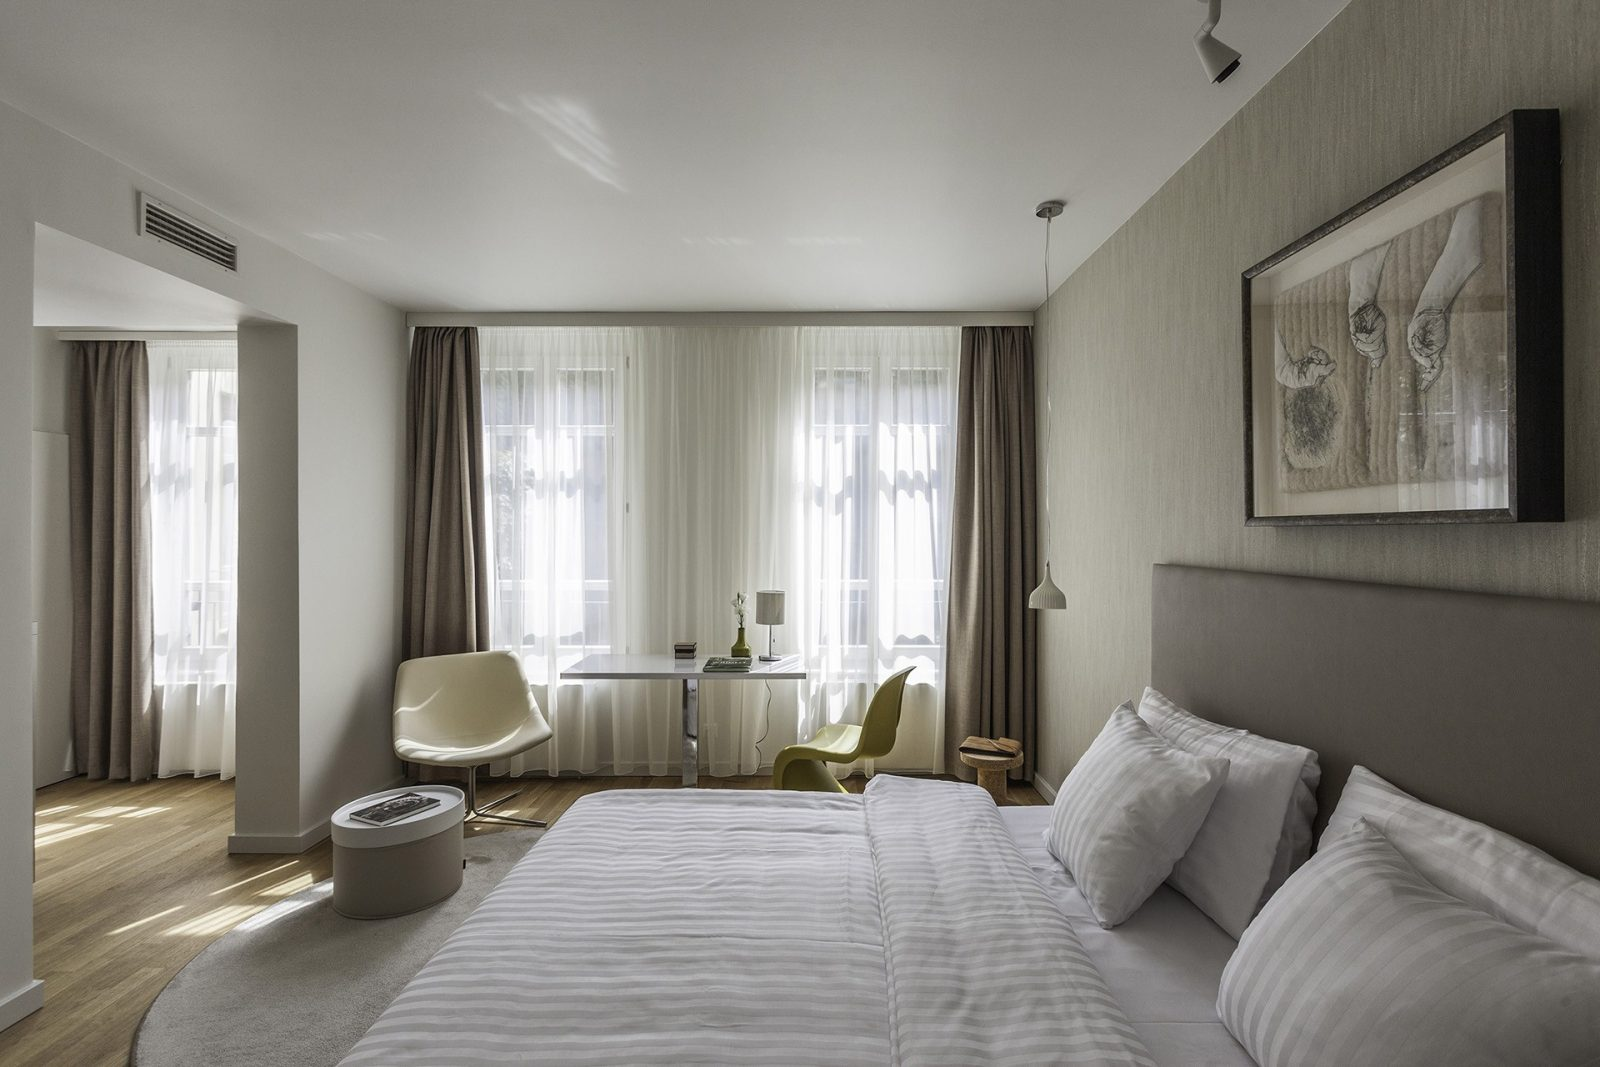 Natural casati budapest hotel andrassy boutique best for Top design hotels budapest